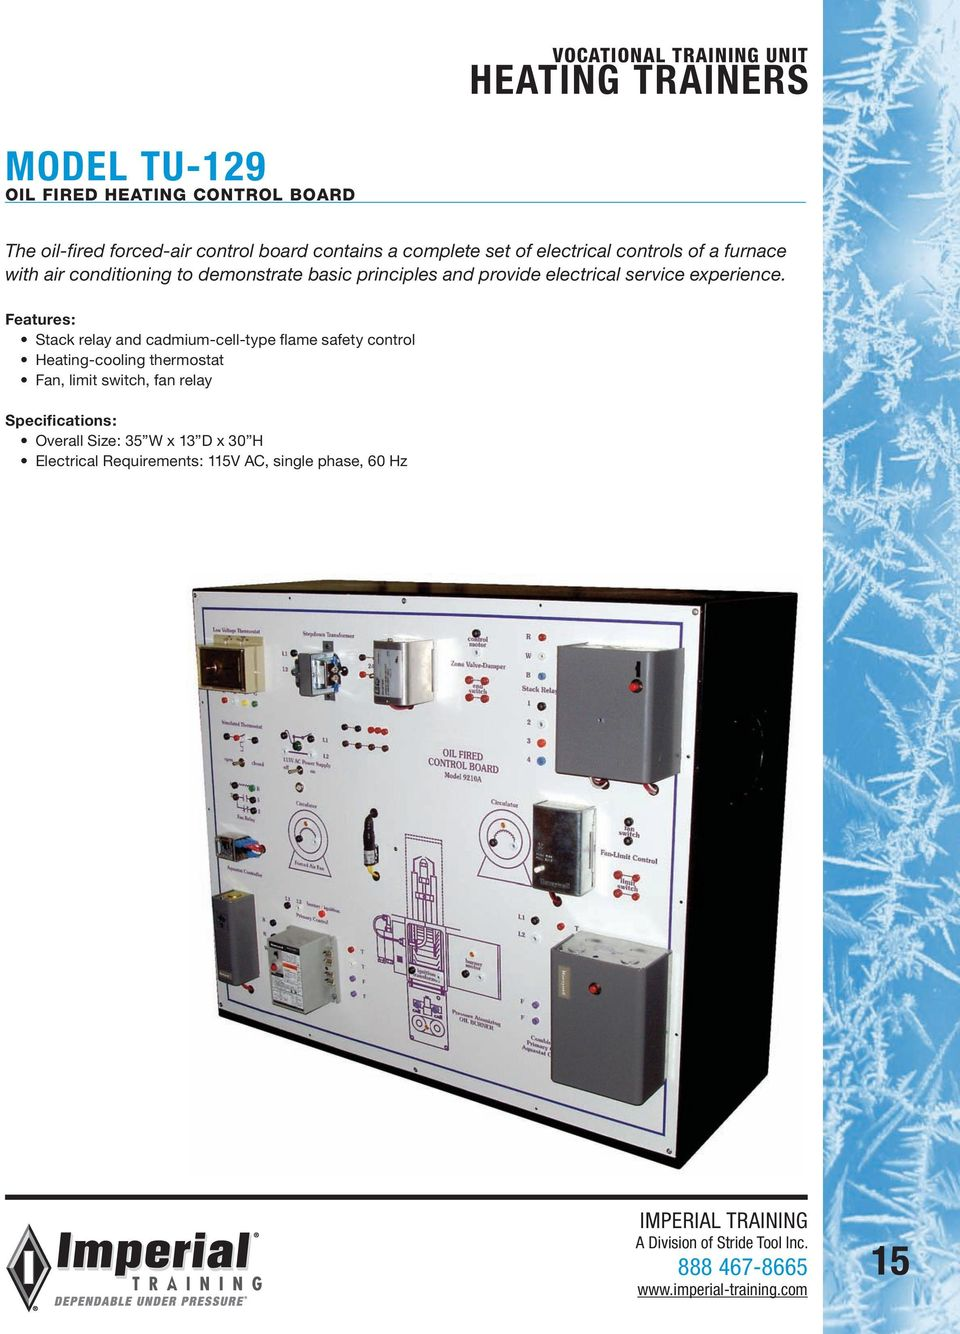 Vocational Training Units 2013 Catalog Pdf Oil Furnace Limit Switch Wiring Diagram Electrical Service Experience